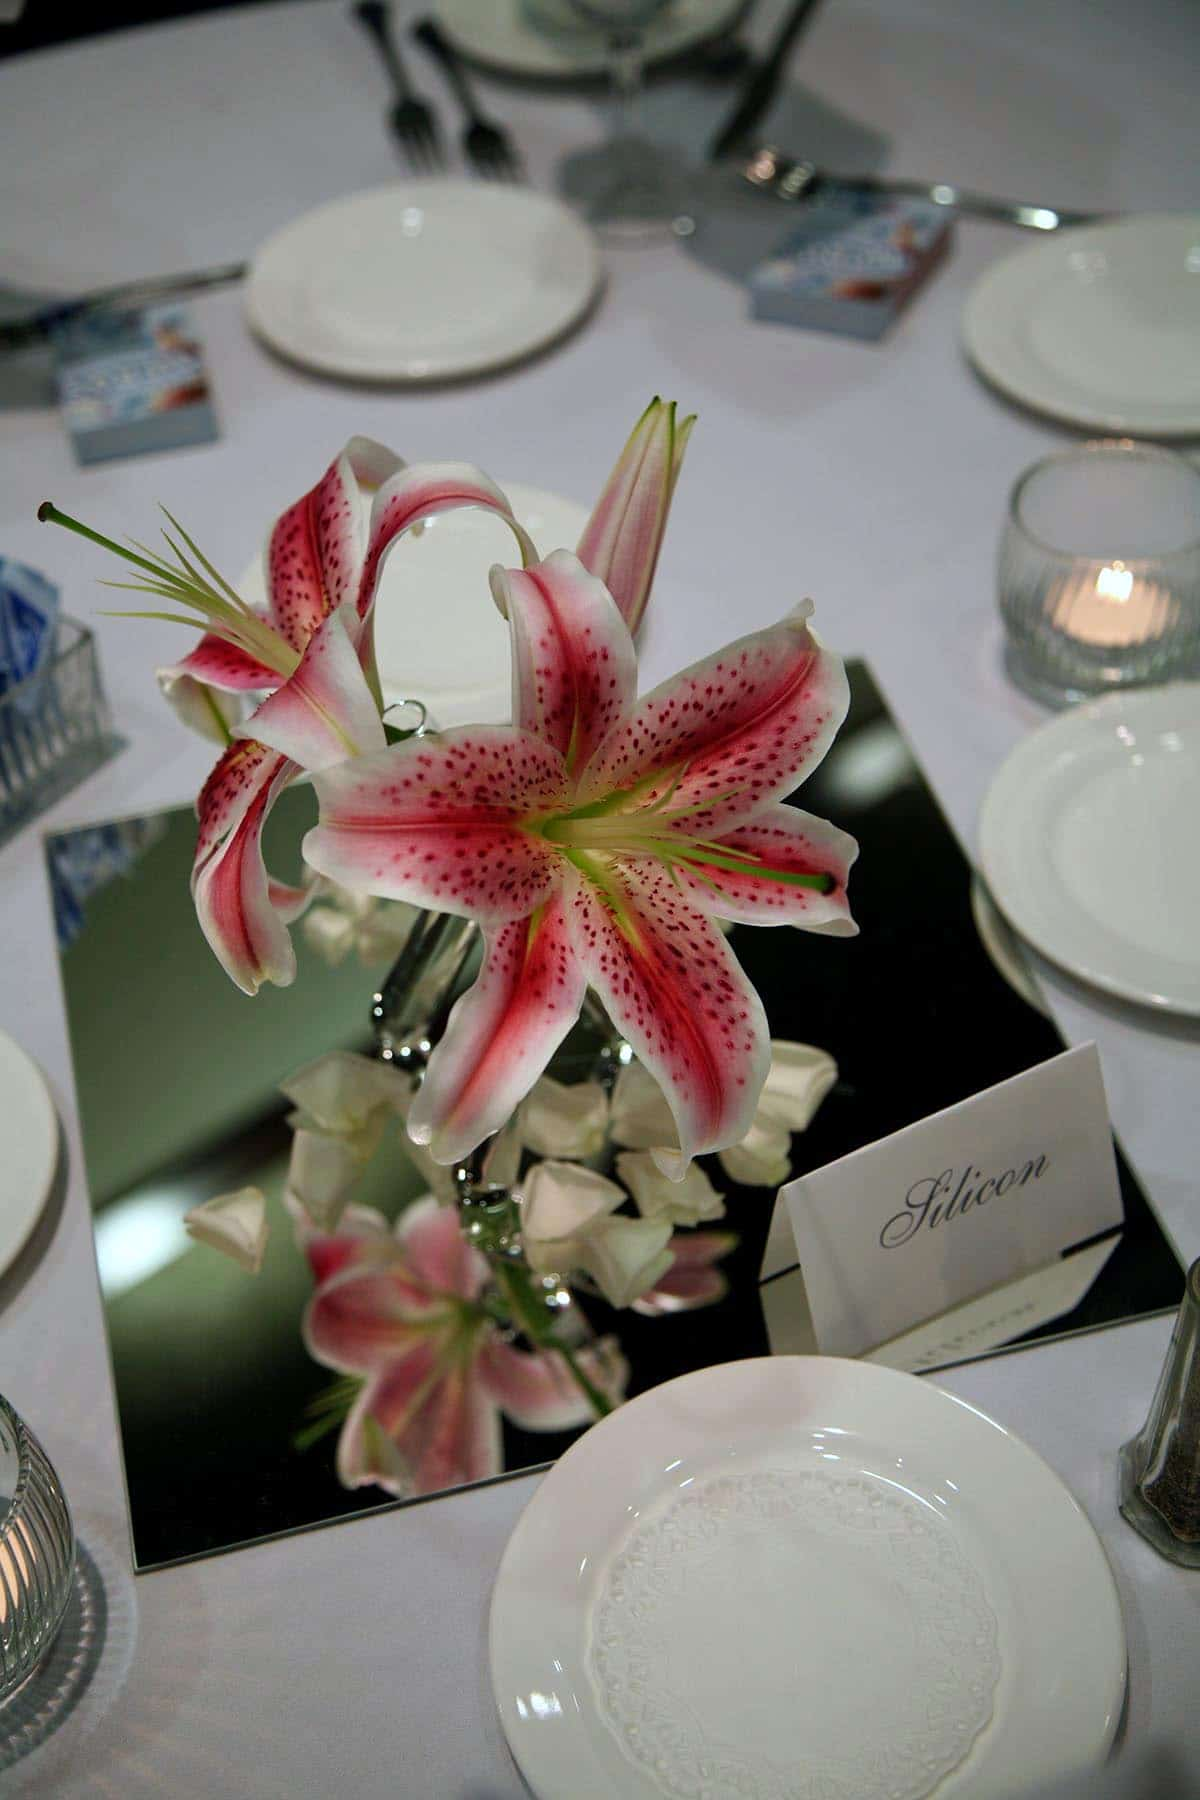 2 stargazer lilies and a bud, in a tripod vase made from test tubes.  The arrangement rests on a large square mirror tile.